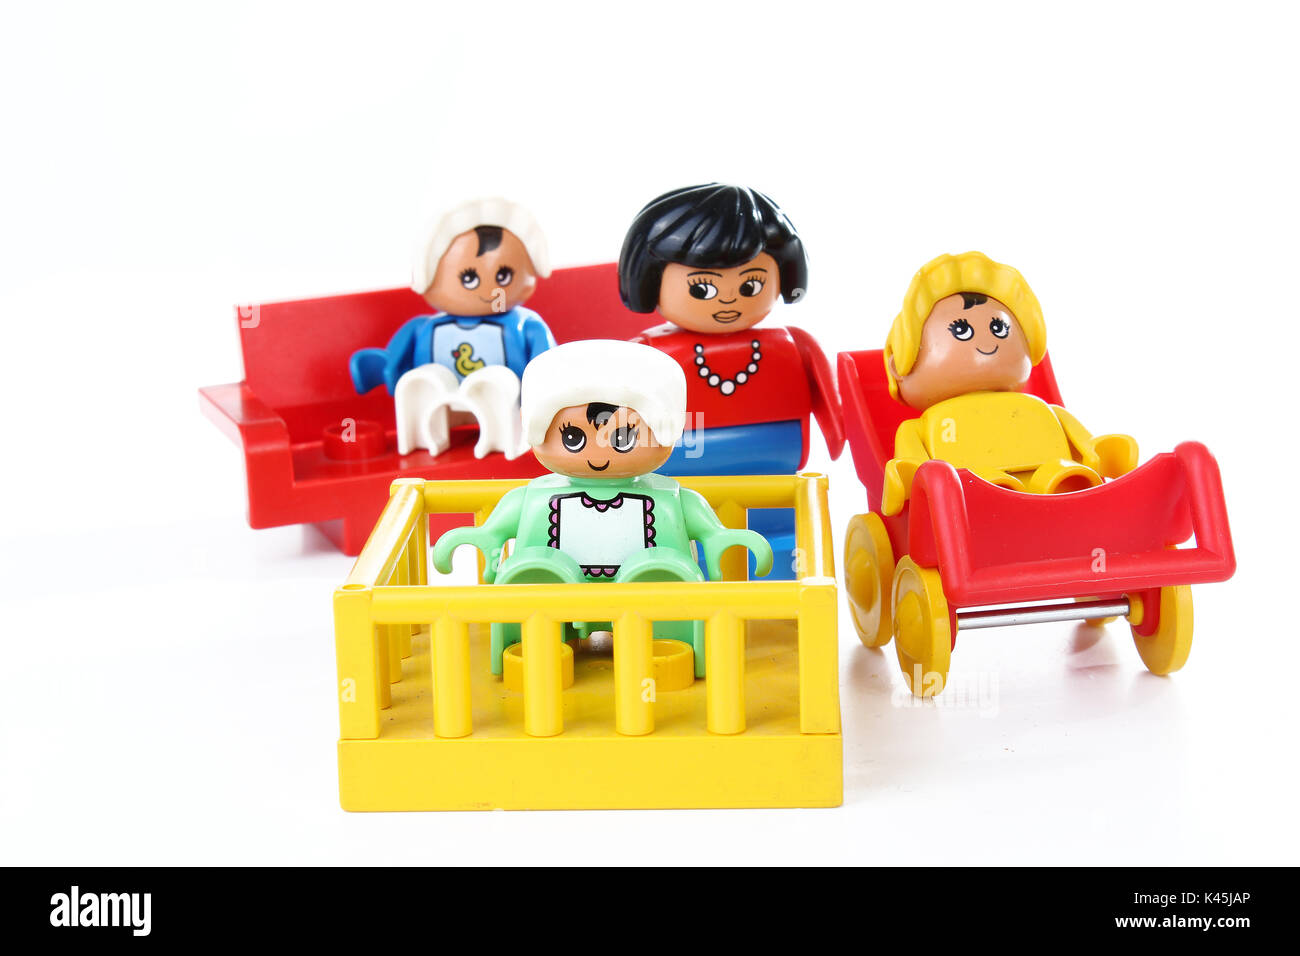 Lego Duplo illustration about single mom with three childrens / baby. Mother or babysitter with kids babies toy on isolated white studio background. - Stock Image